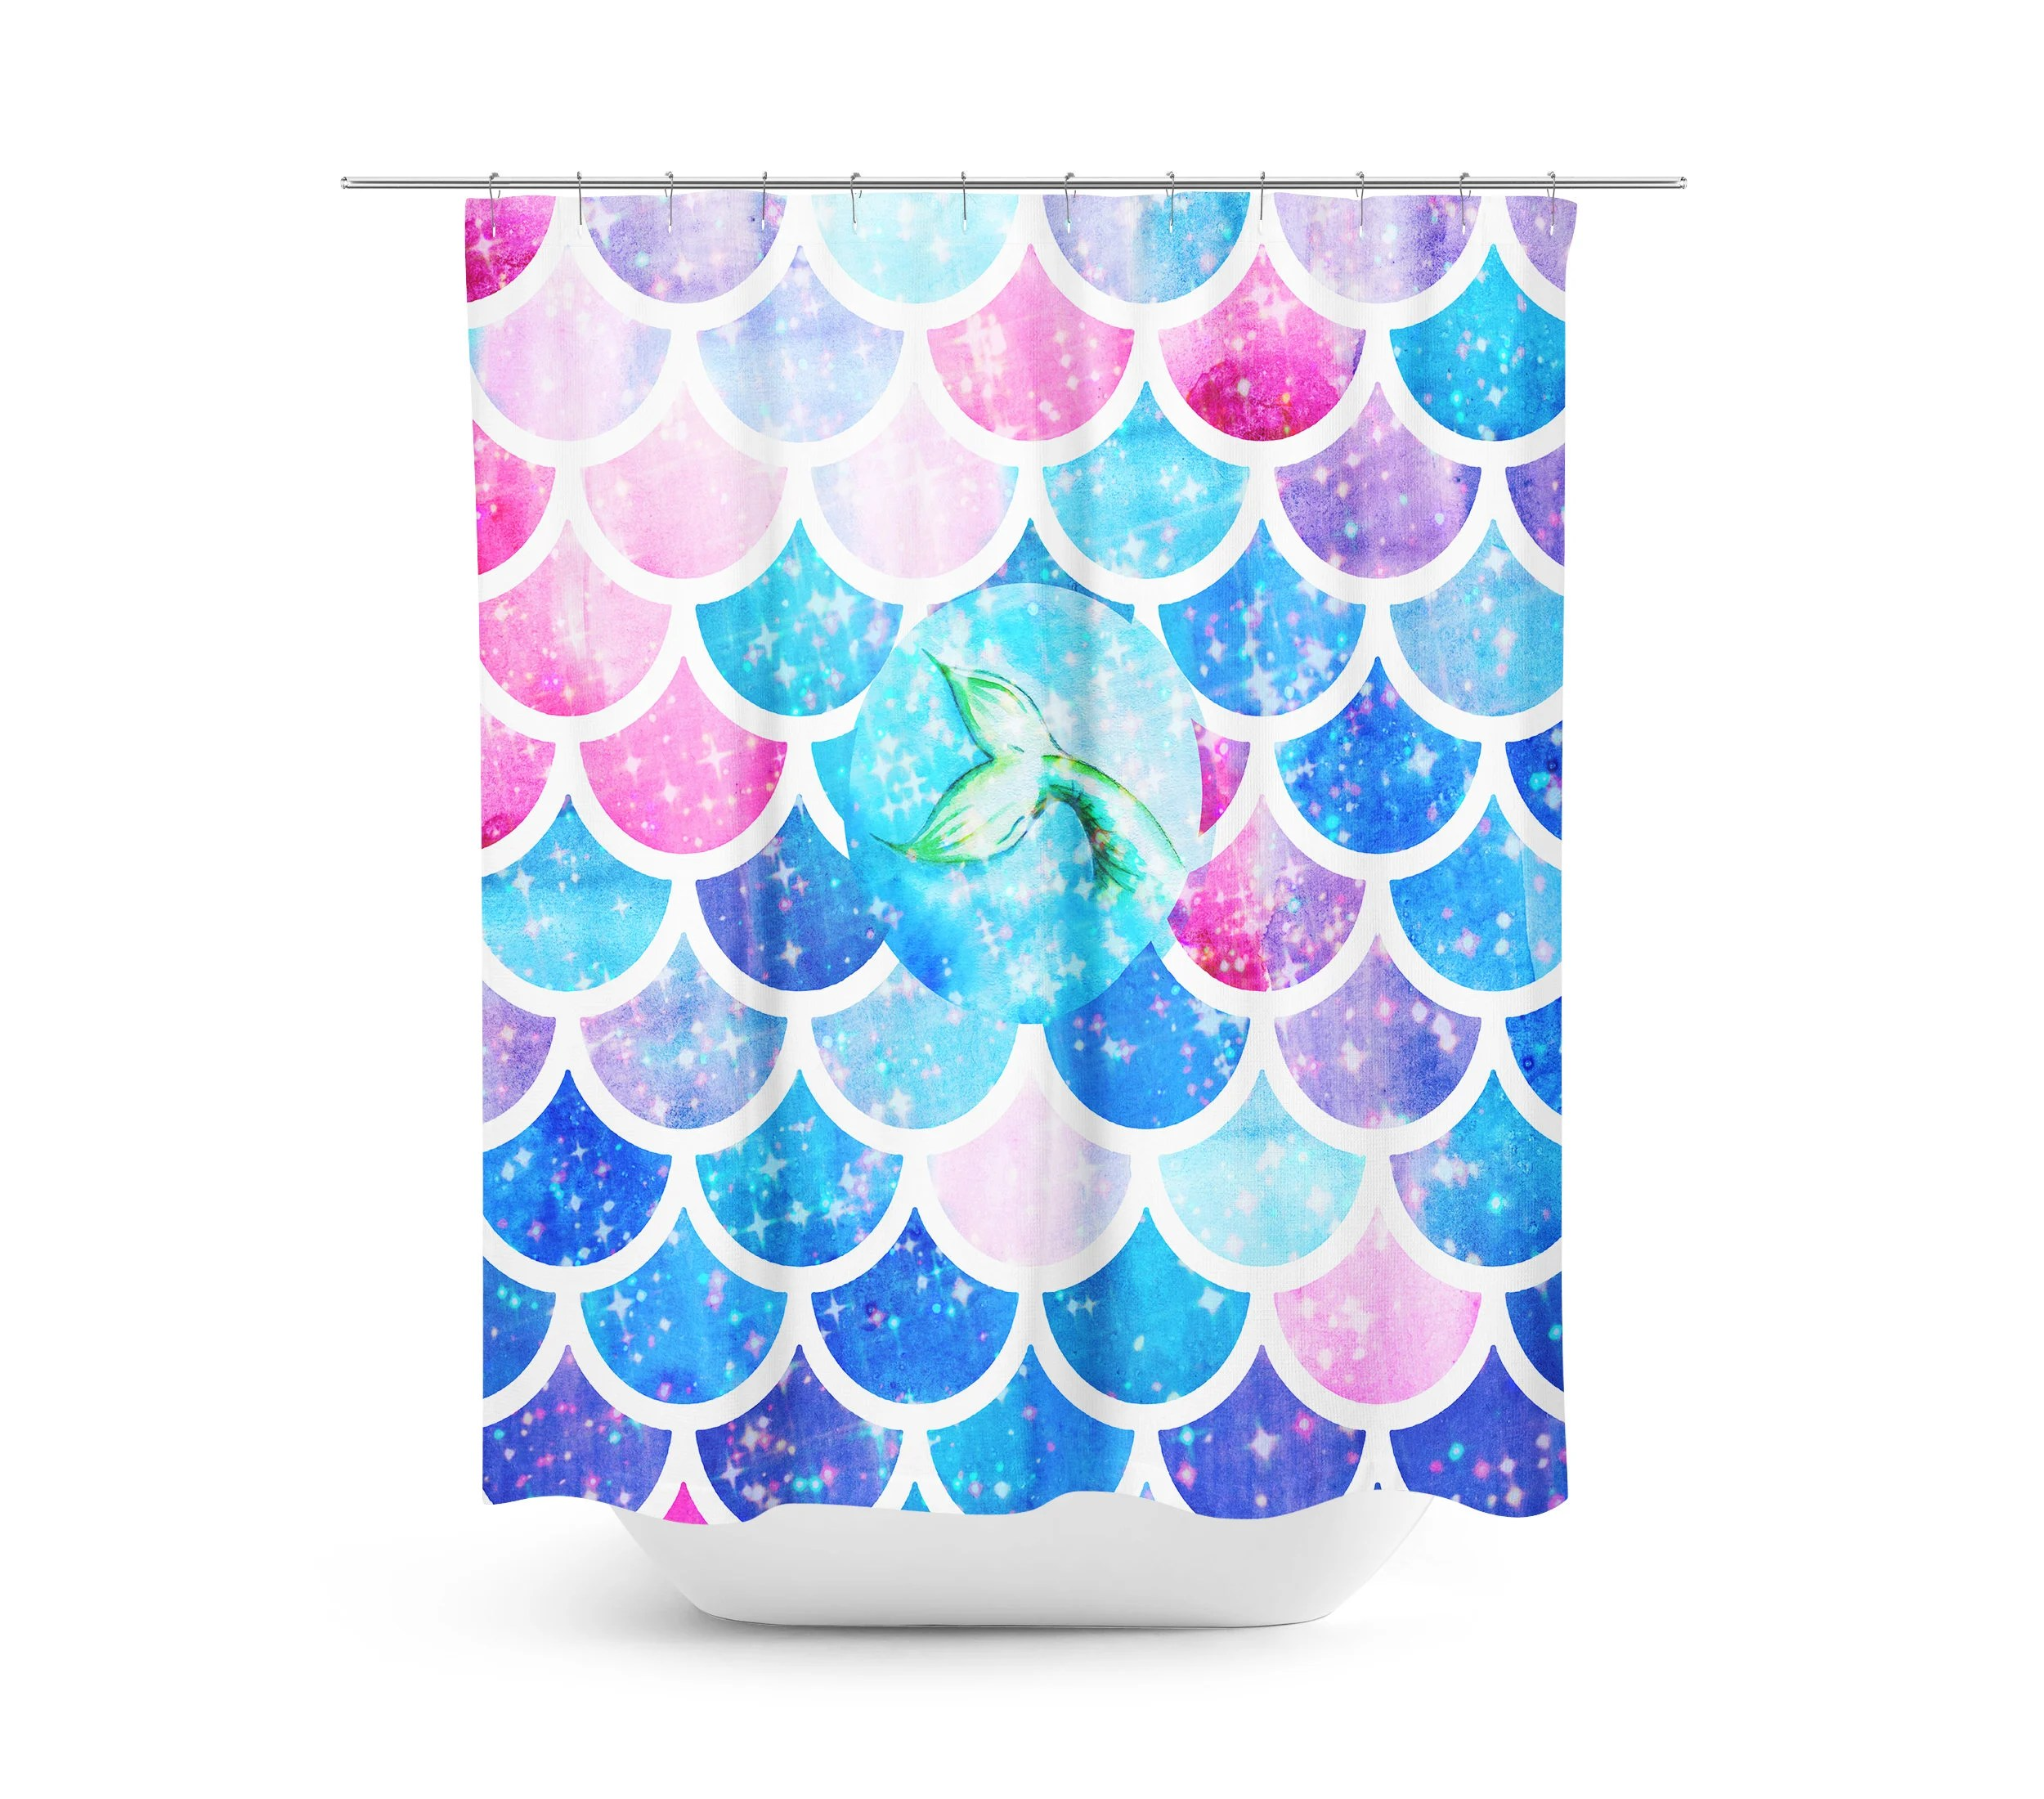 Mermaid Scale Shower Curtain Mystical Mermaid Scales Shower Curtain Optional Bath Bath Towels